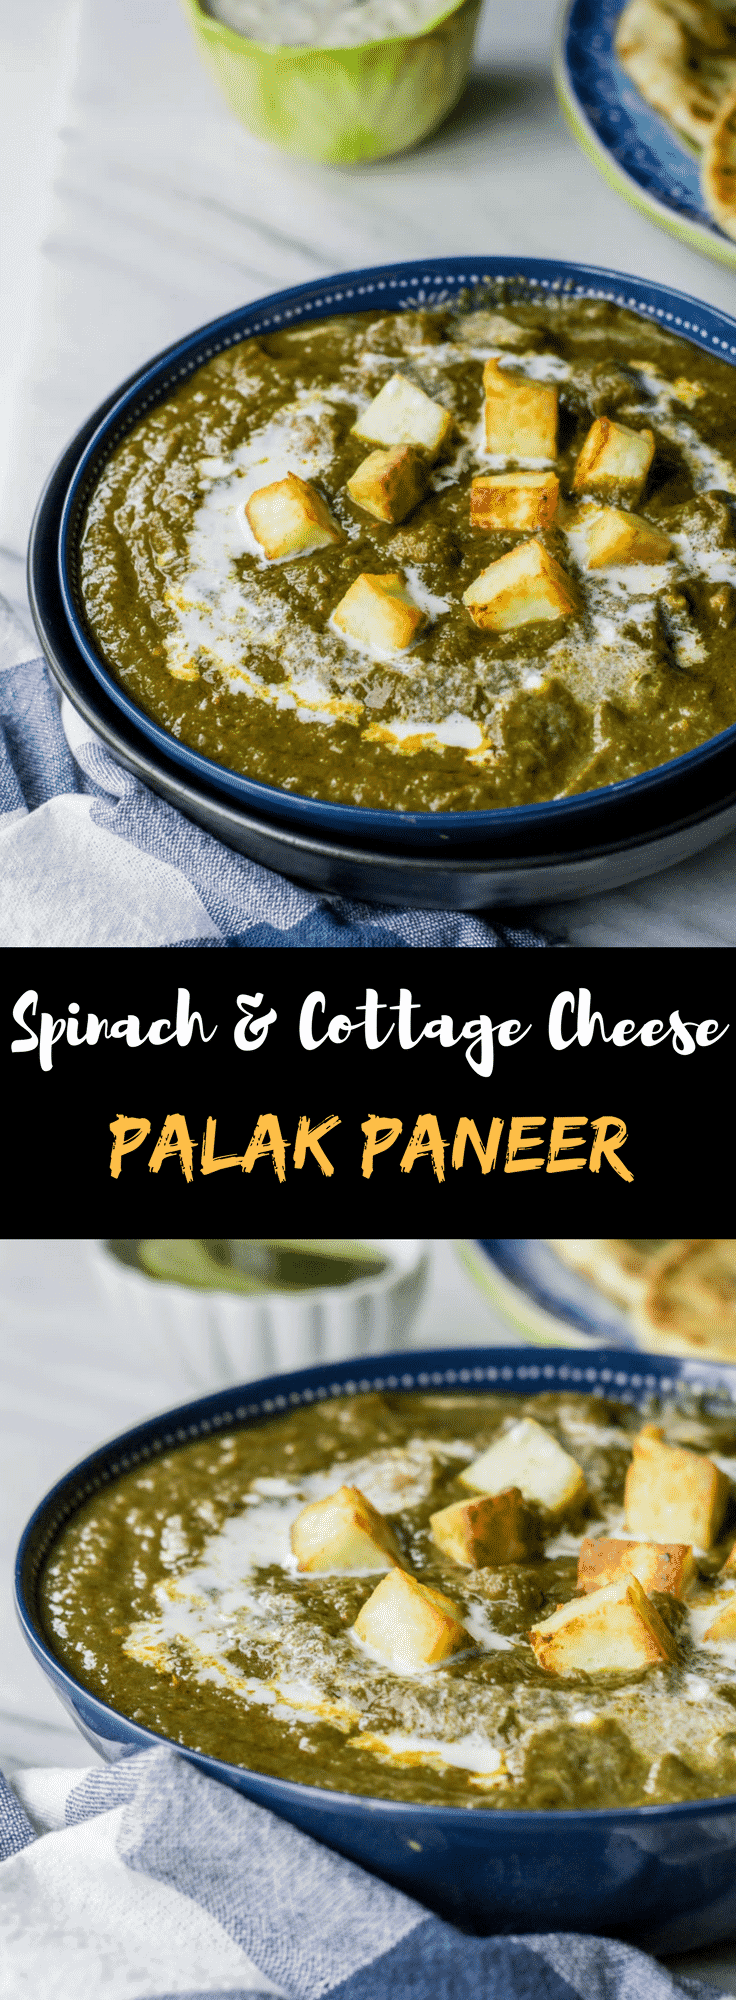 Palak Paneer Restaurant Style - Here's is an easy recipe to make restaurant style Palak Paneer (Spinach with cottage cheese) at home the healthy way!